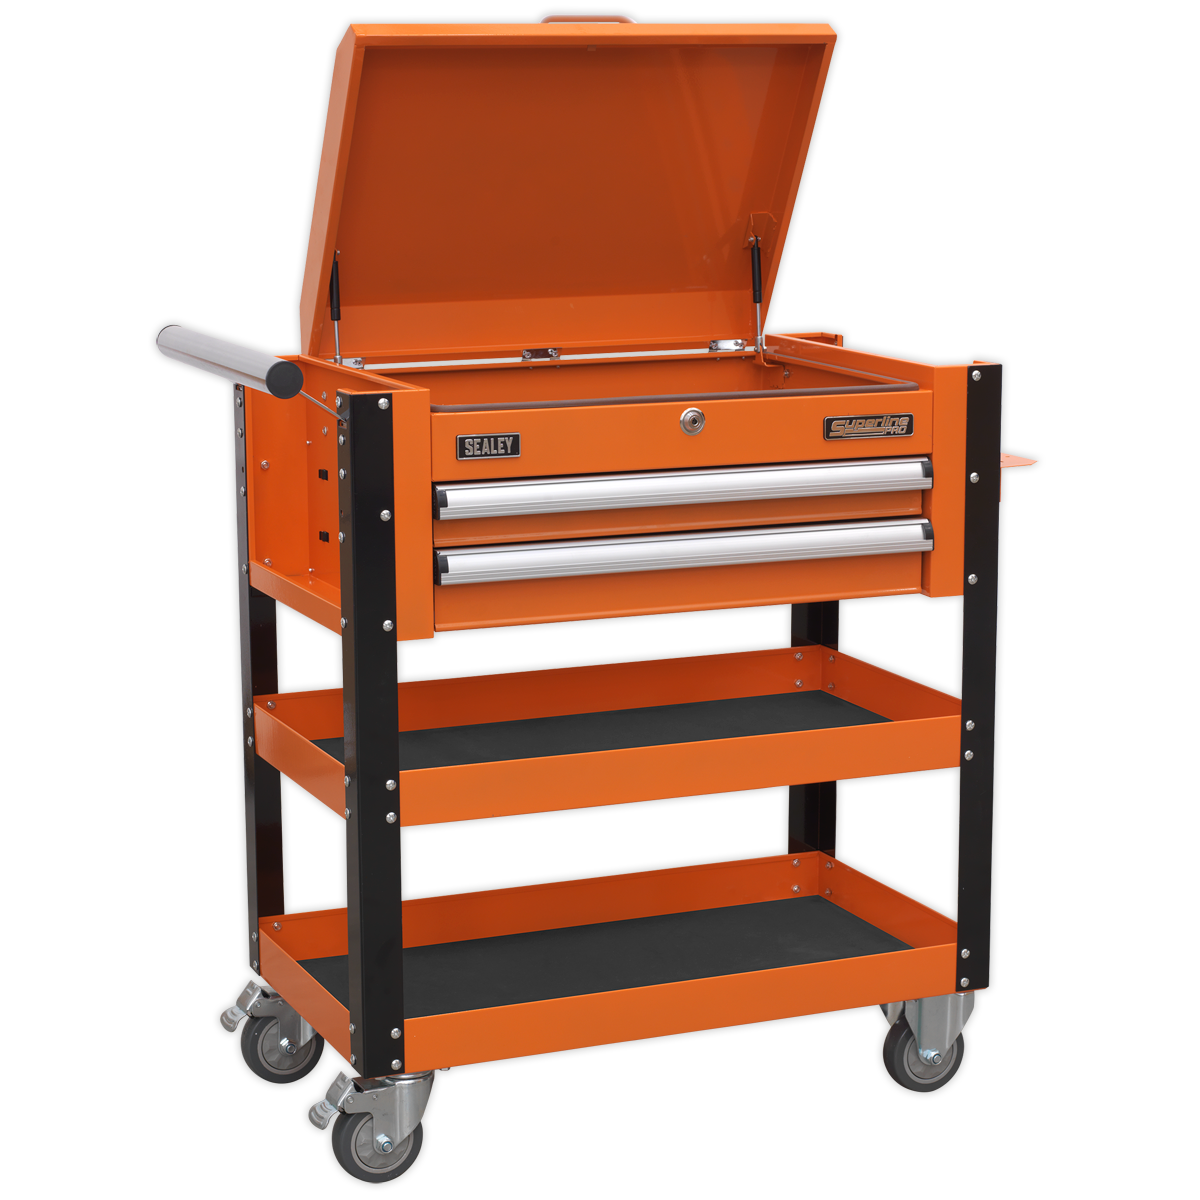 SEALEY Mobile Tool & Parts Trolley with Lockable Top AP760MO | 40 kg capacity drawers contain ball